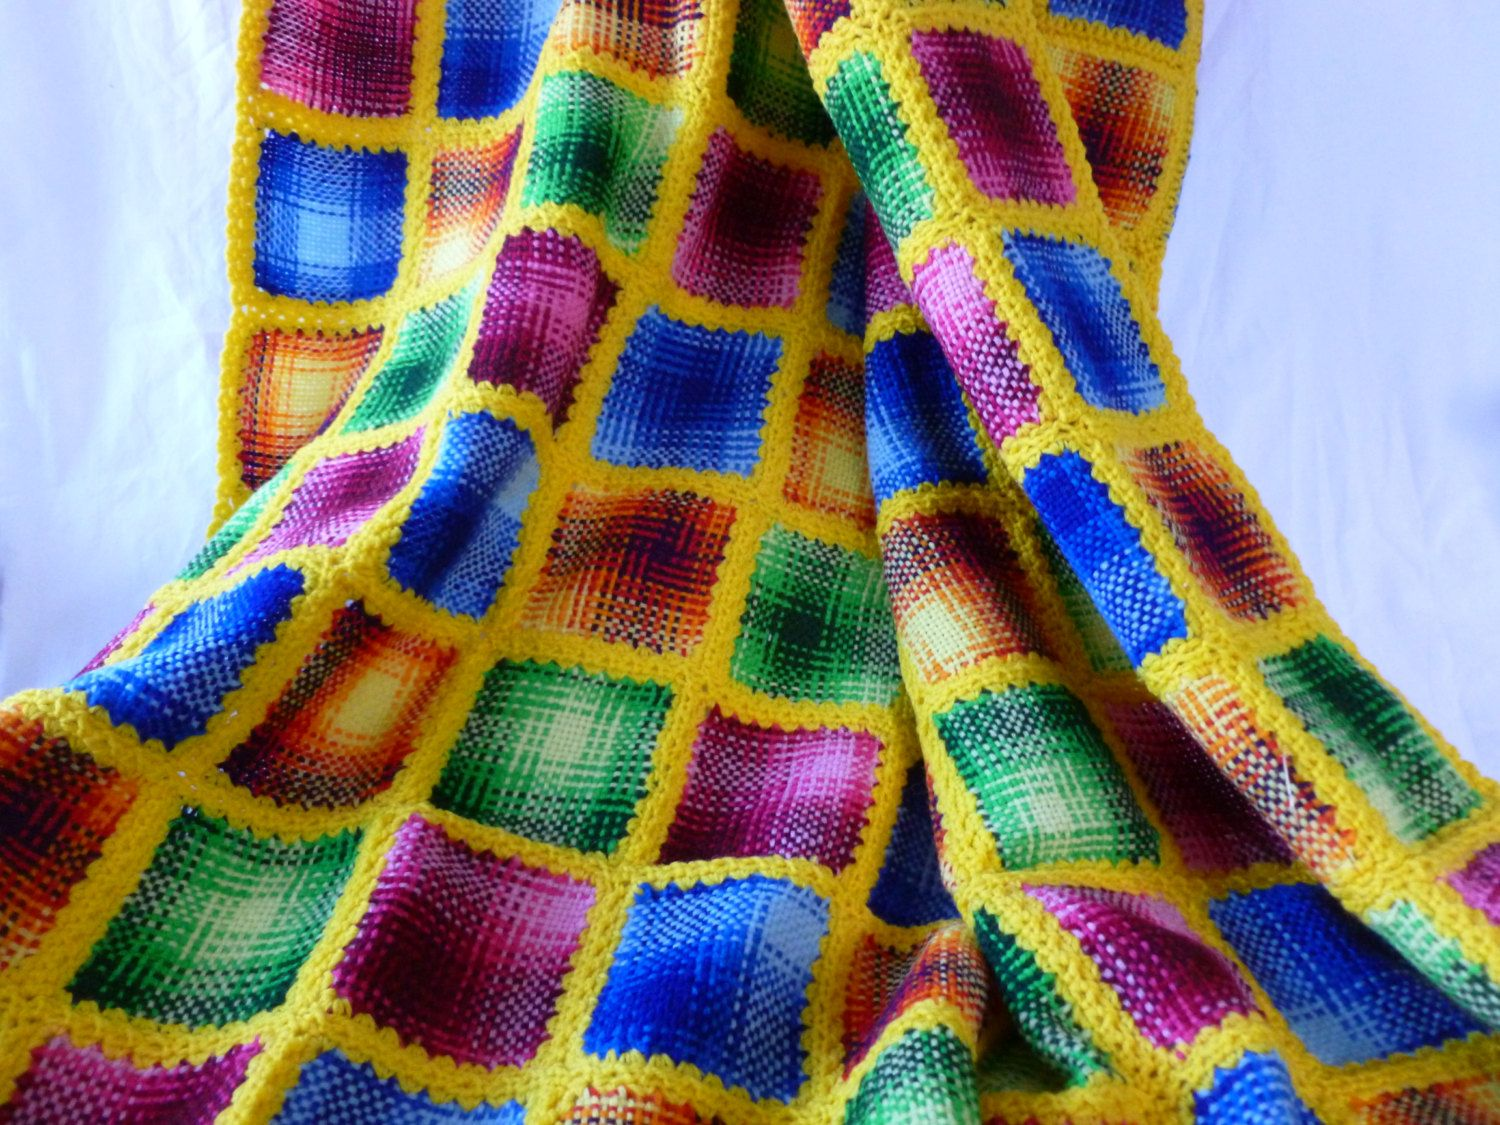 Colorful Throw Blankets Awesome Vintage Hand Crochet And Woven Granny Square Afghan Colorful Throw Design Decoration